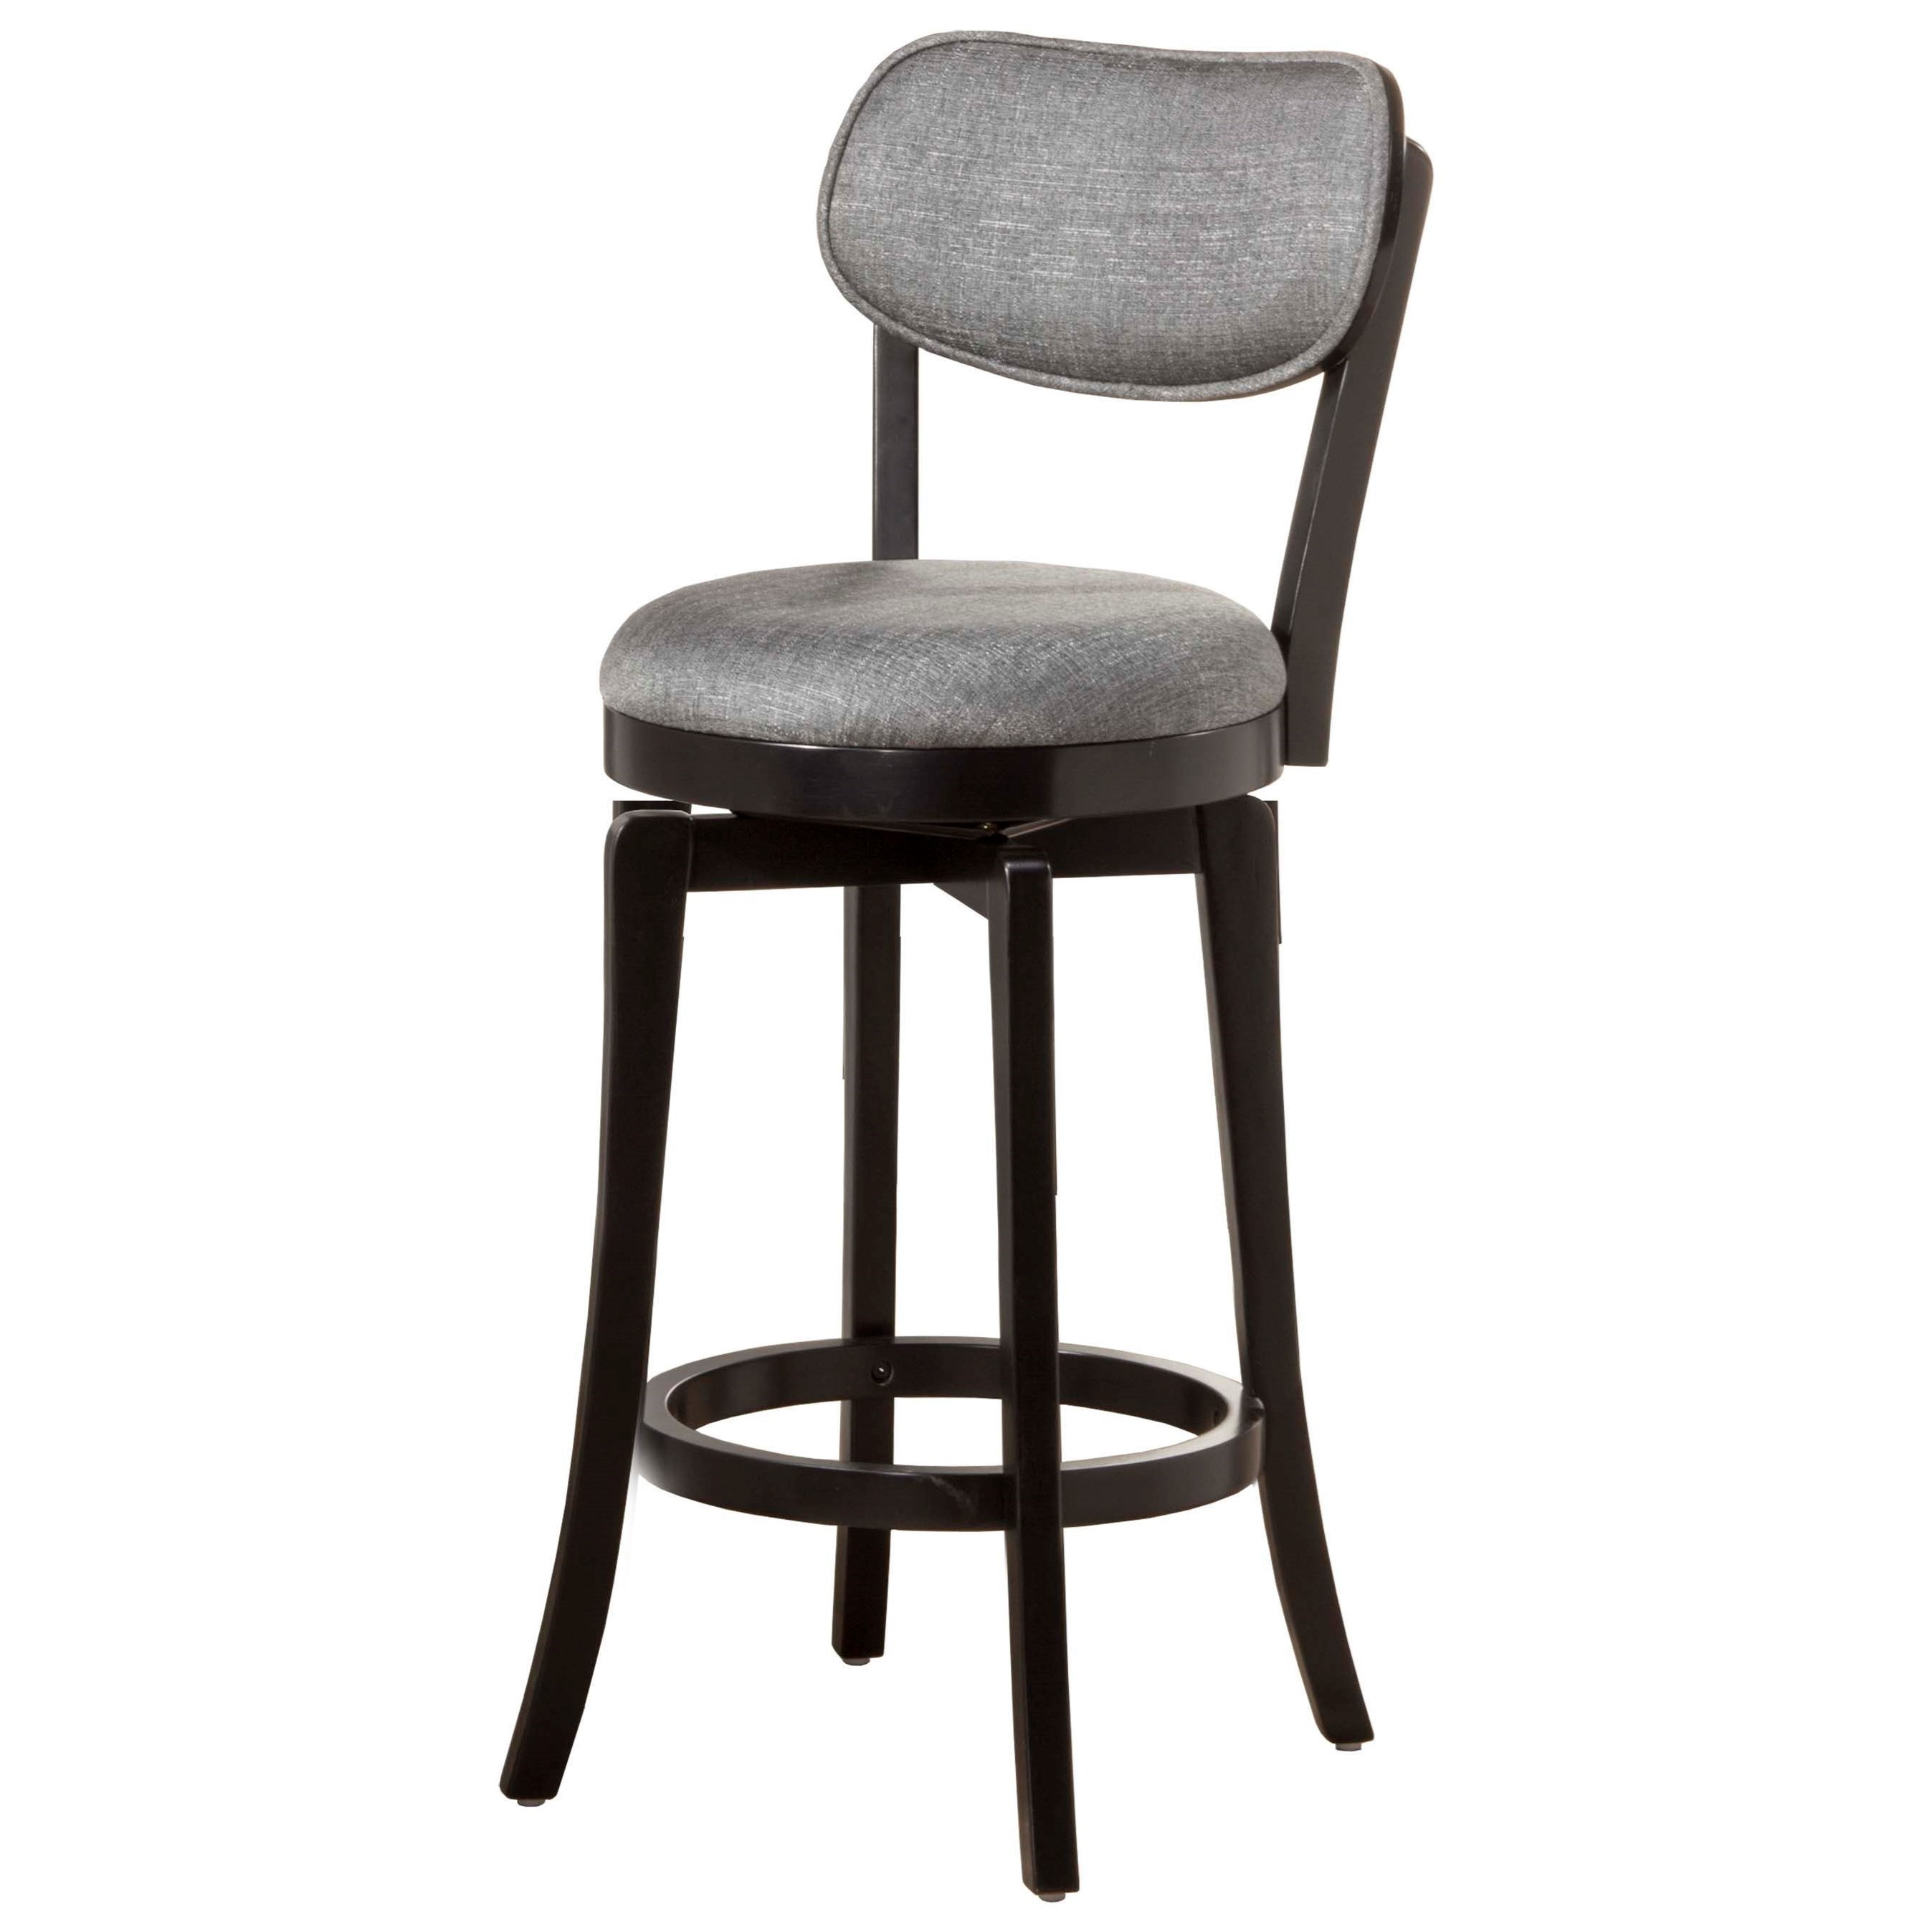 Wood Stools Swivel Counter Stool by Hillsdale at SuperStore